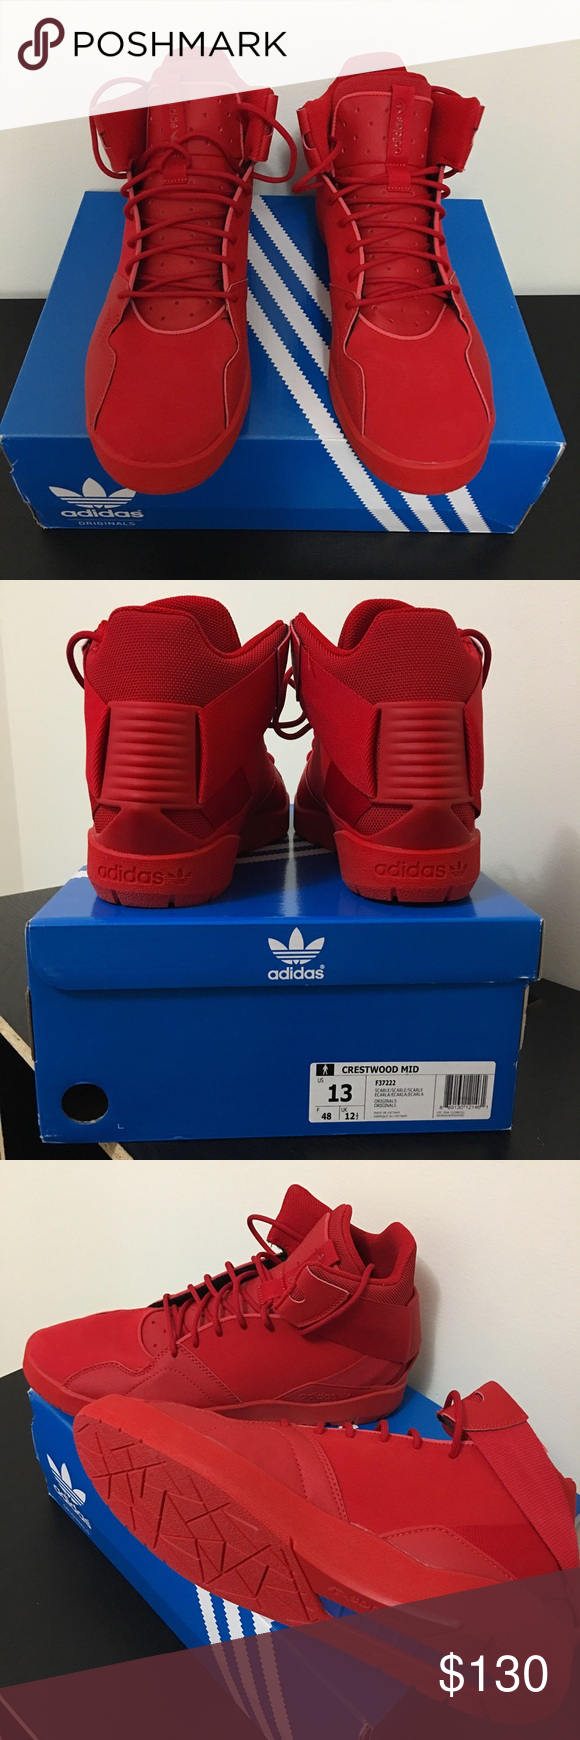 best service 558f1 39698 Mens Adidas Crestwood Mid NEW IN BOX Mens adidas new in box never worn Crestwood  Mid sneaker. Size 13. All red. ♤ ♥ 🃏♢ ♧ Adidas Shoes Sneakers